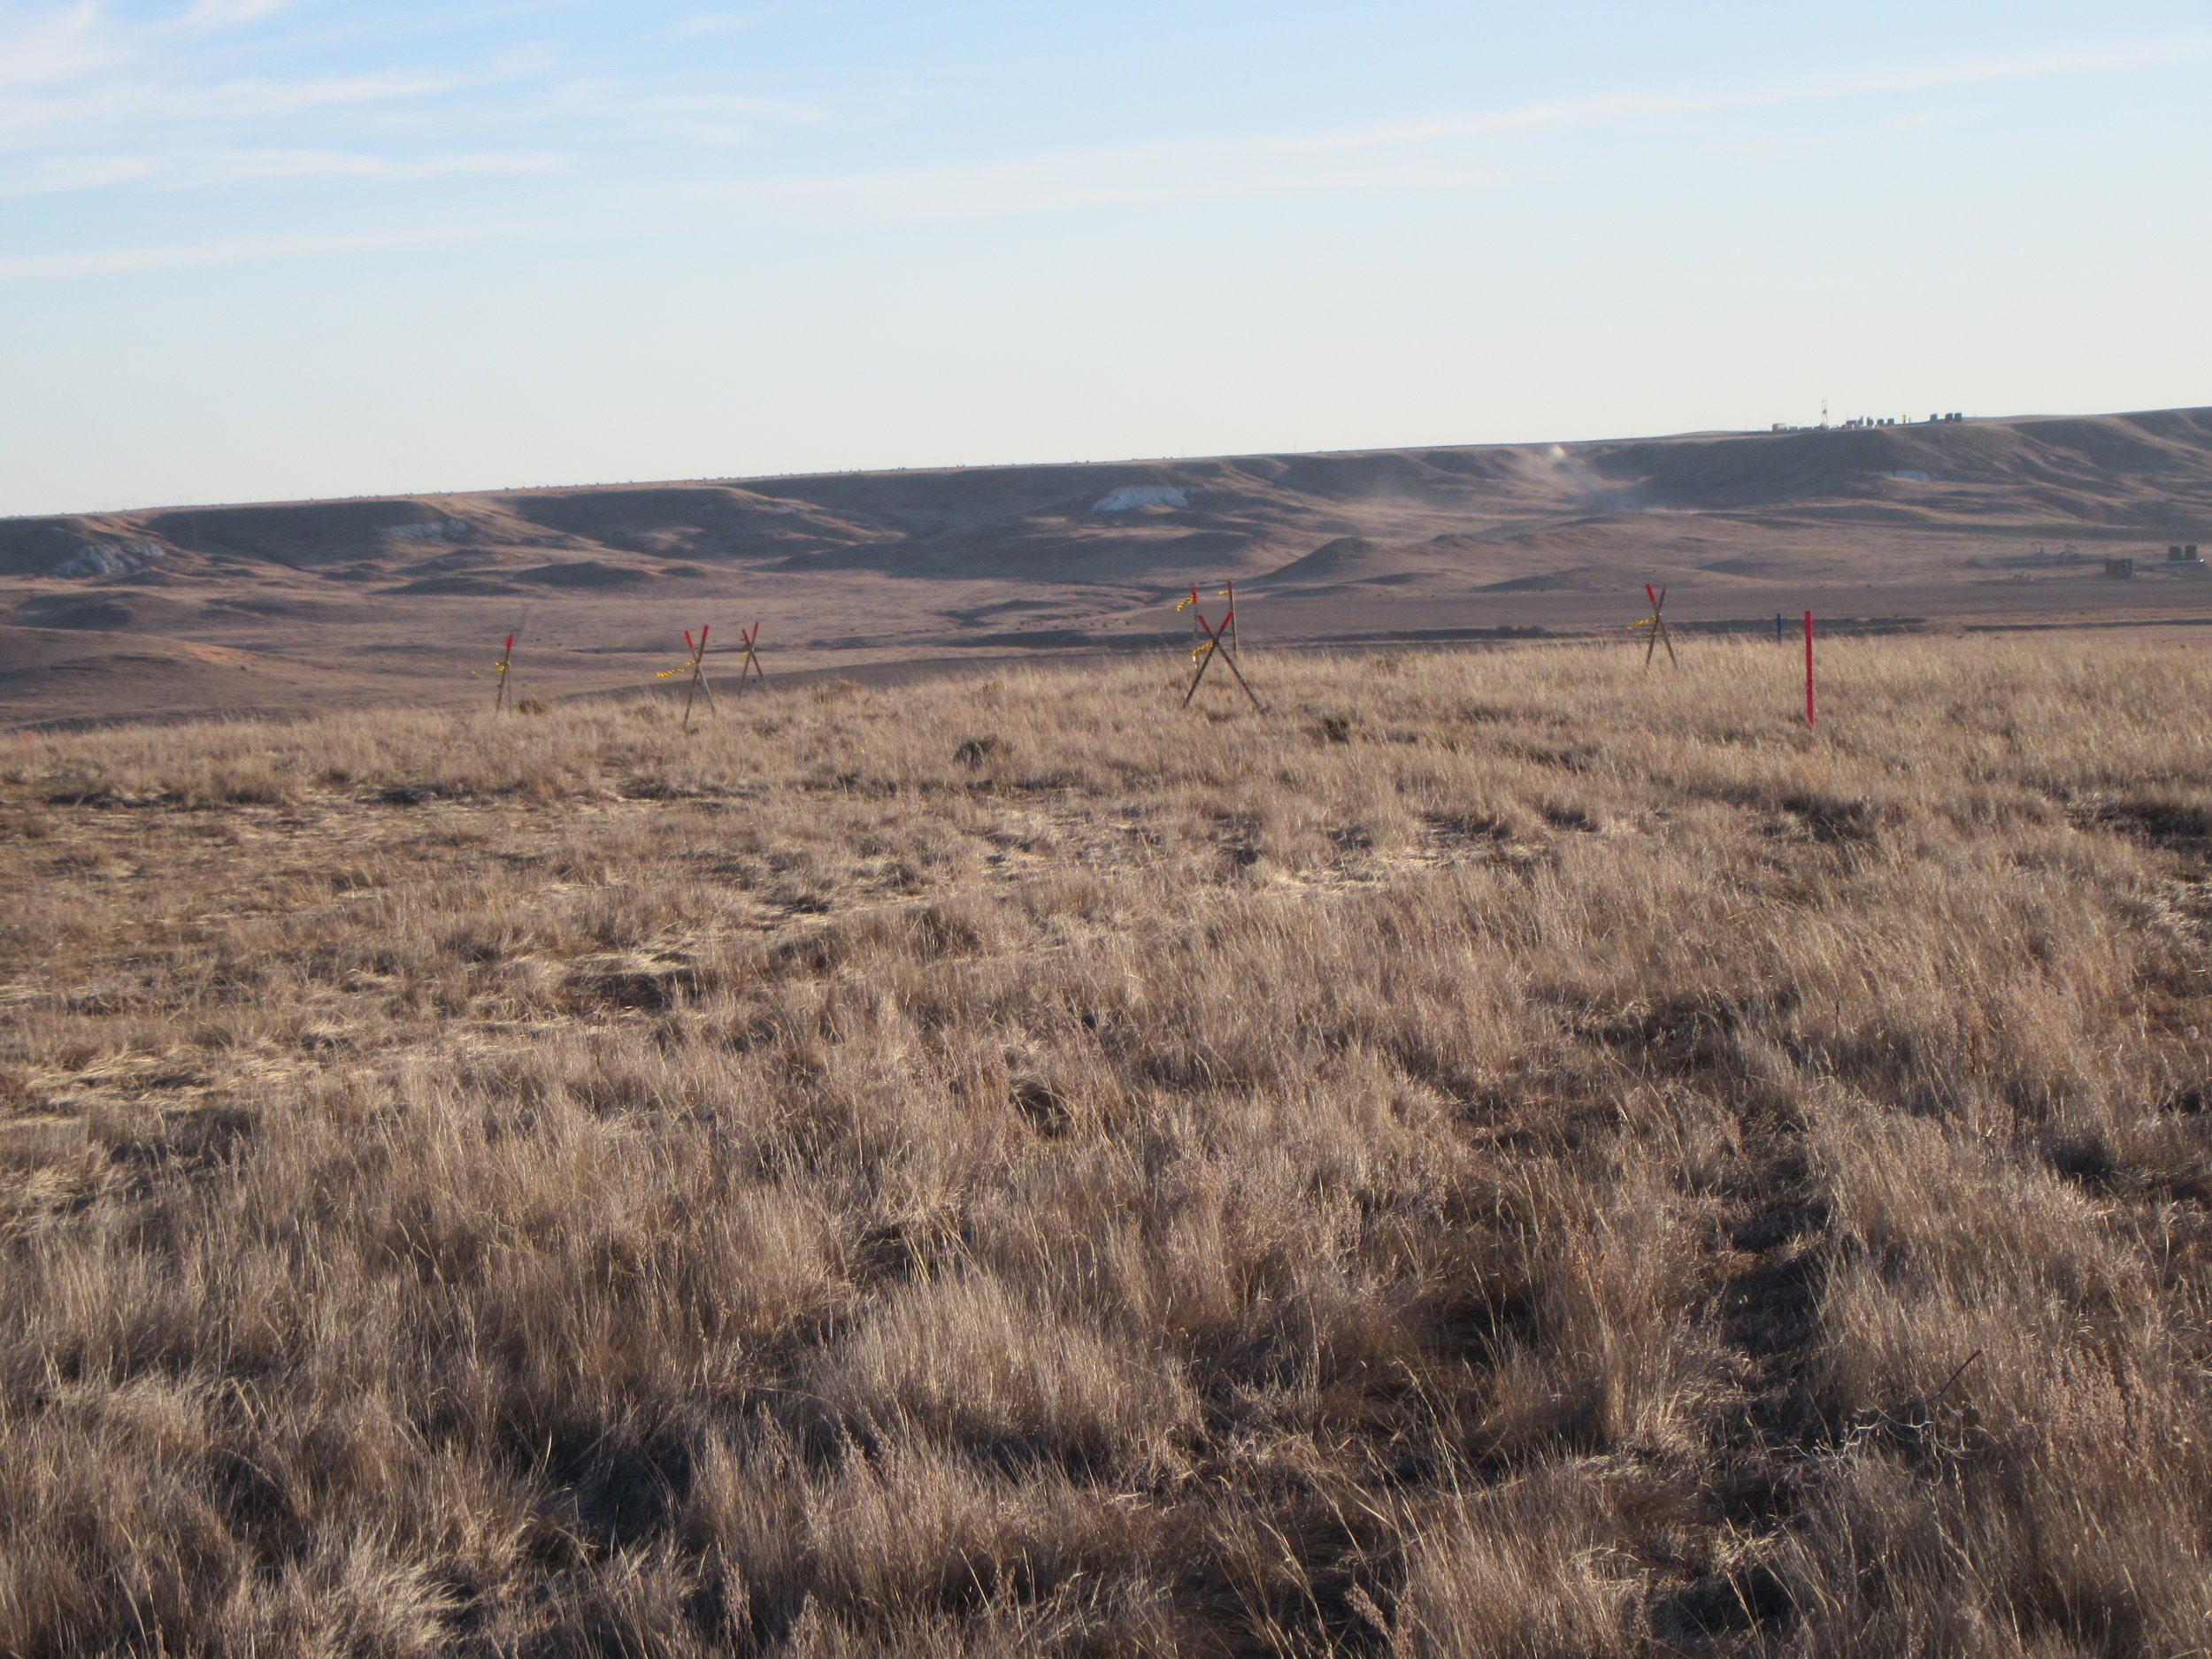 Stone cairns staked and flagged for avoidance along the Frenchman River valley in southwest Saskatchewan.